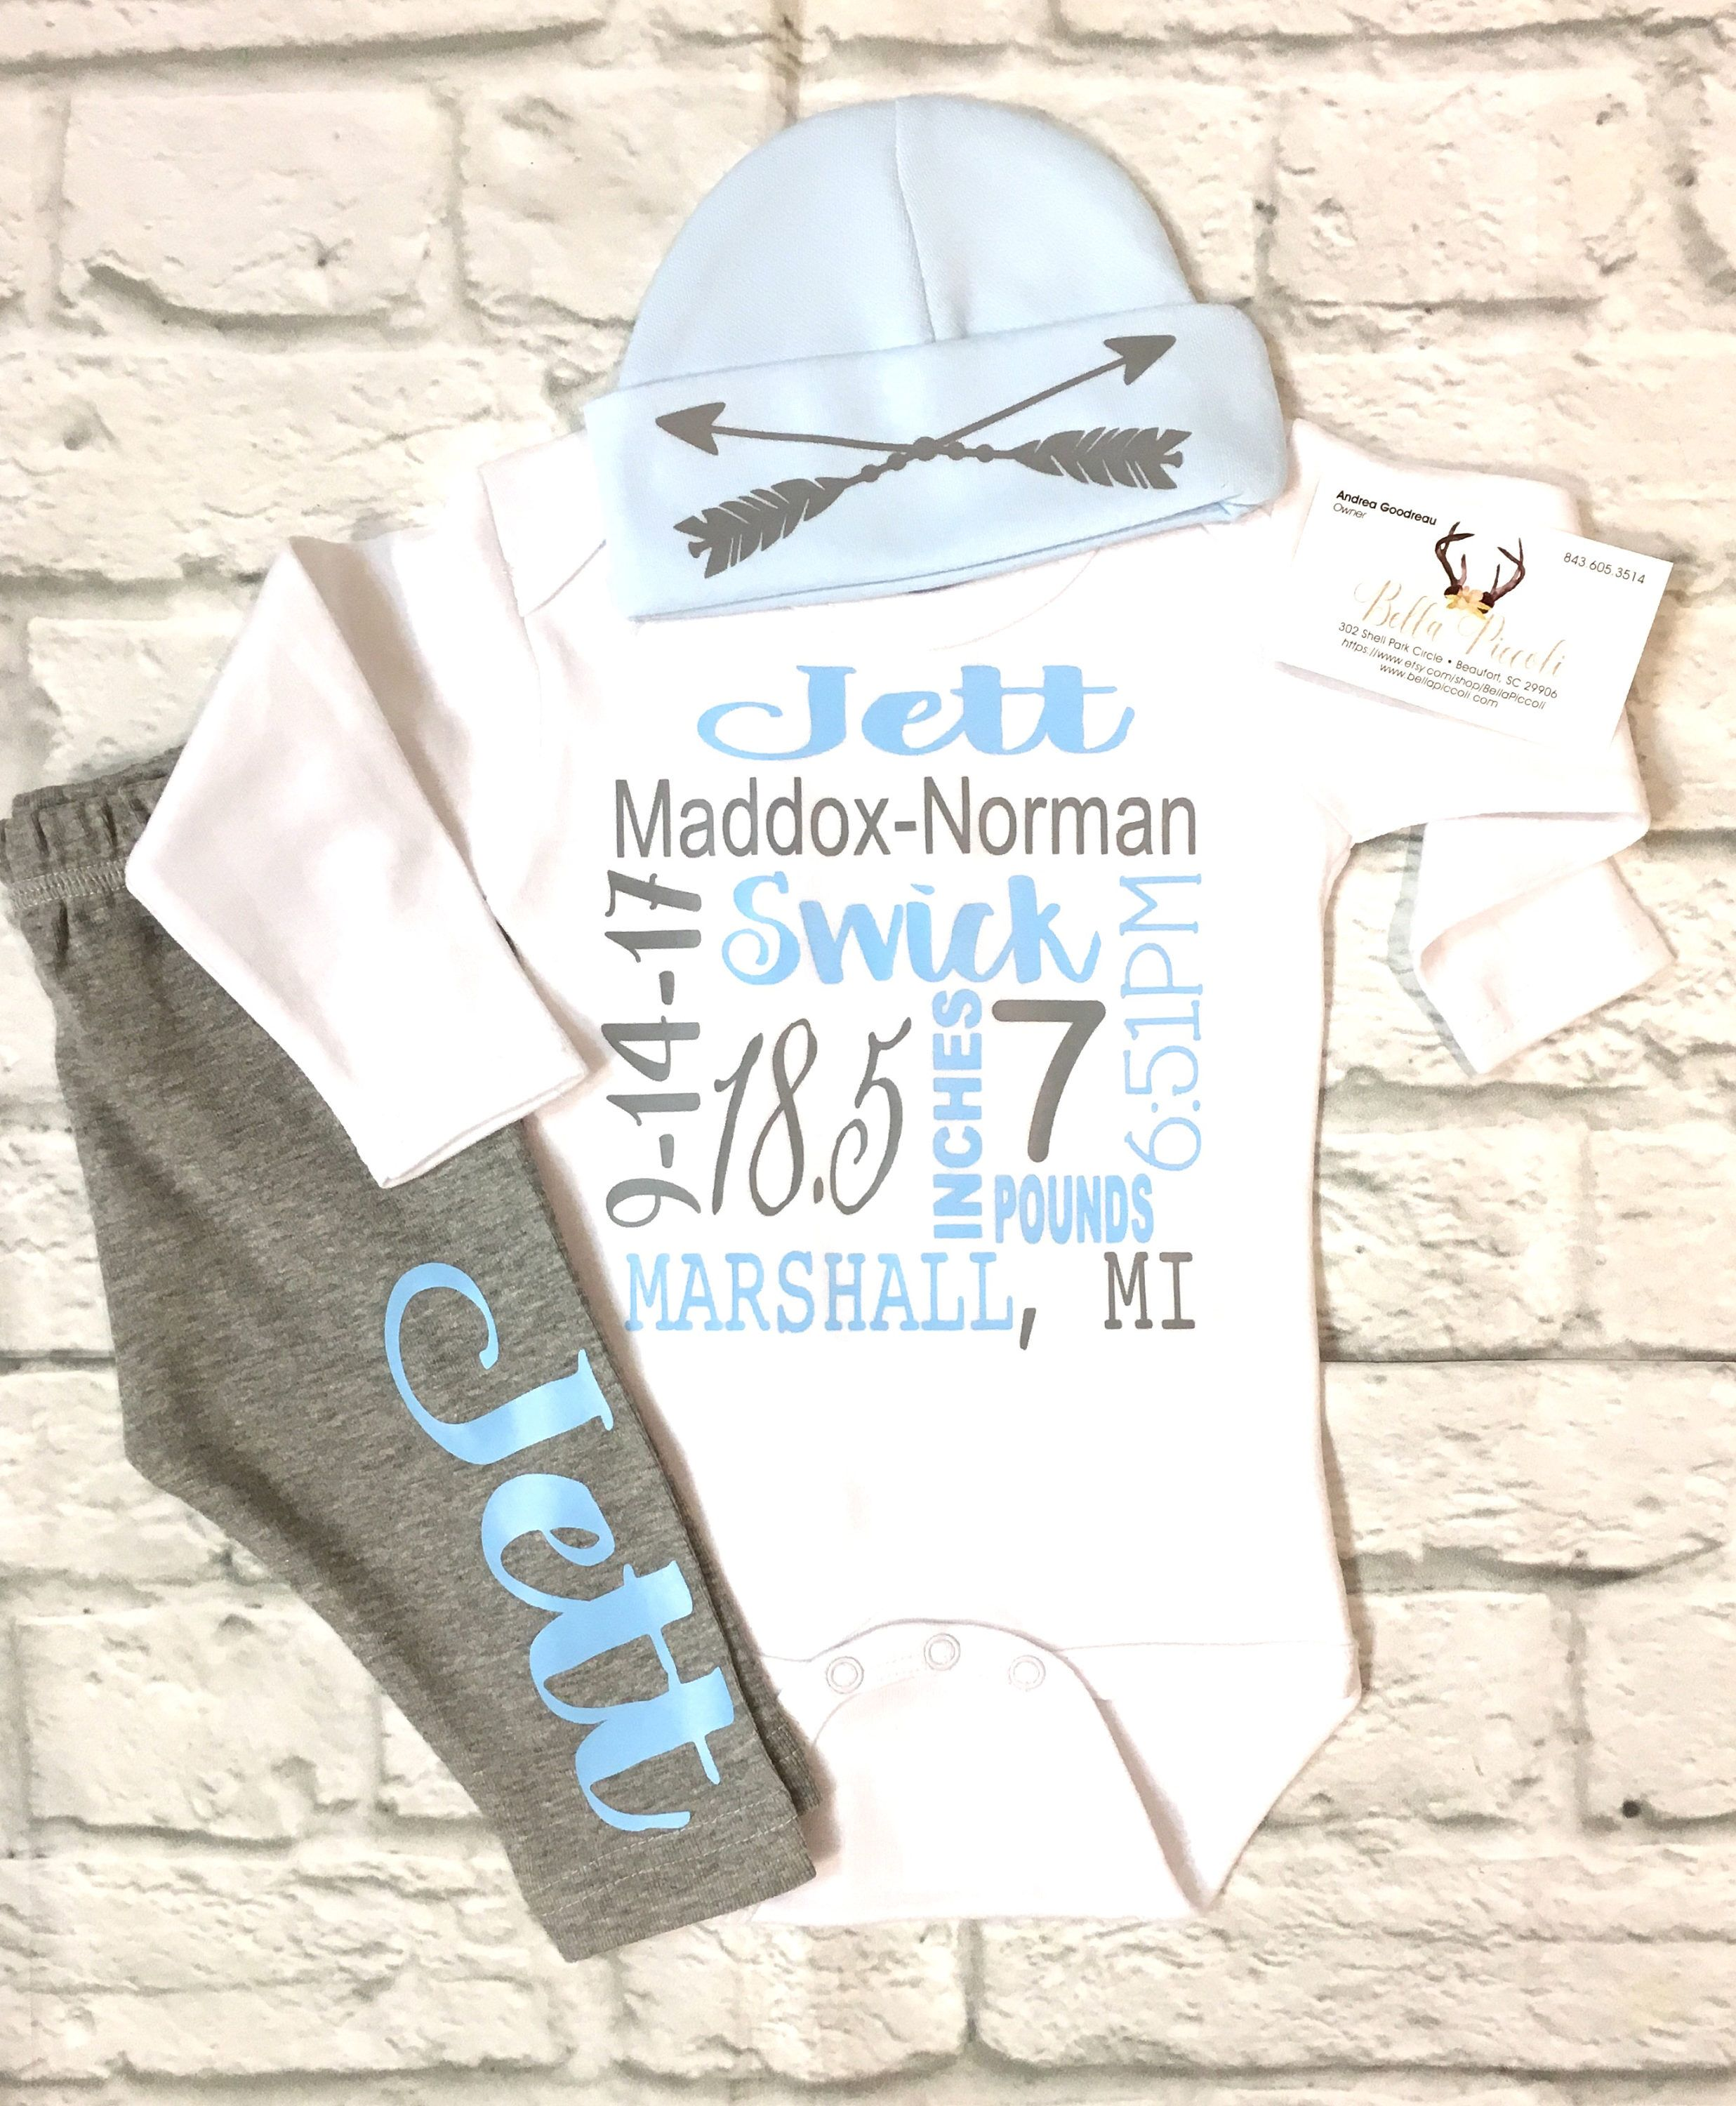 9acae66e6ce39 Baby Boy Outfits · A personal favorite from my Etsy shop  https://www.etsy.com